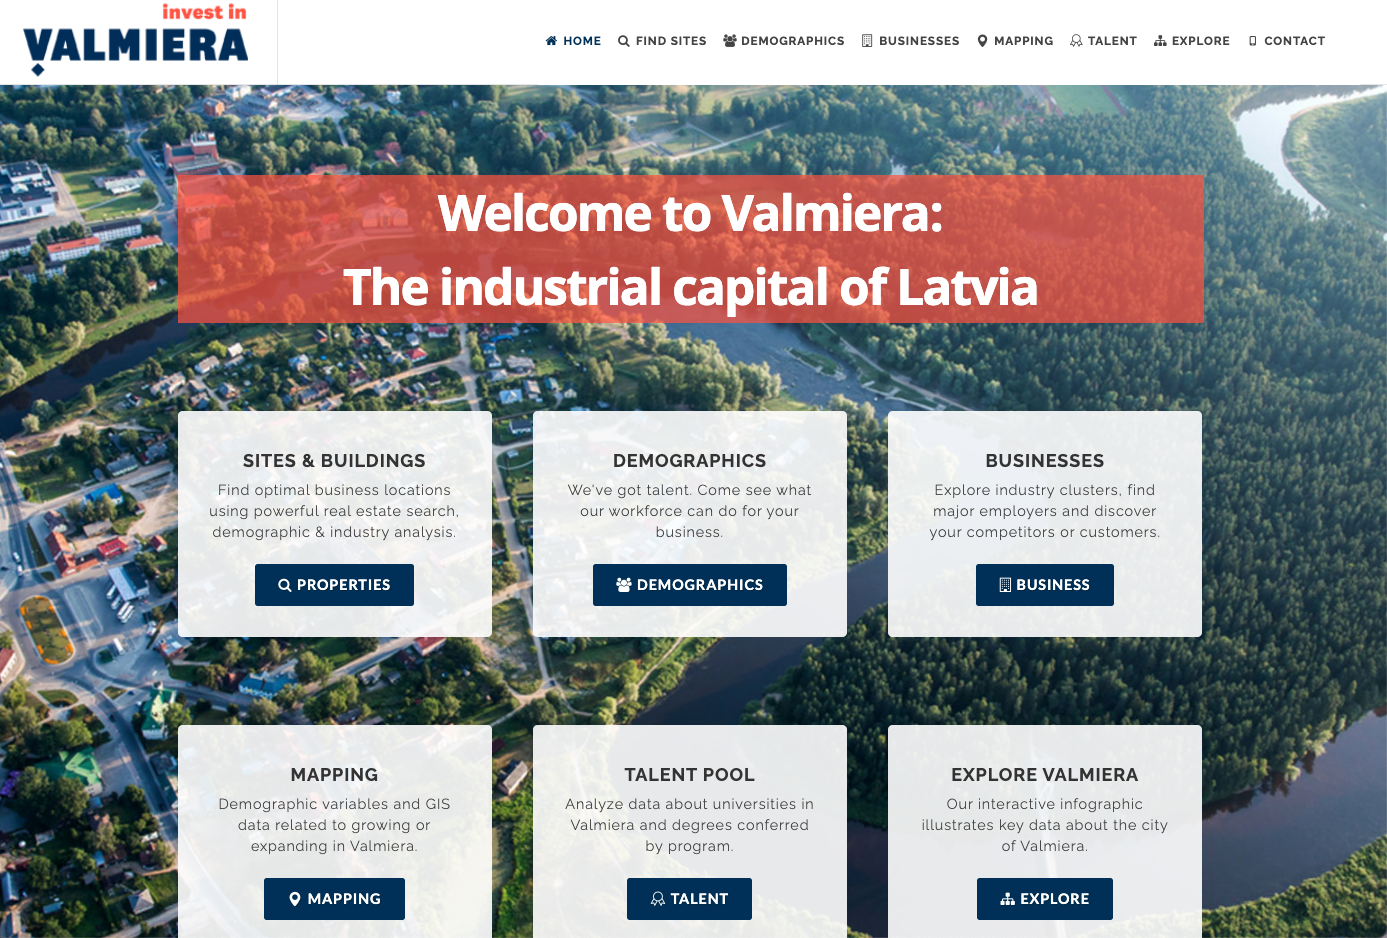 Invest in Valmiera (Latvia) home page